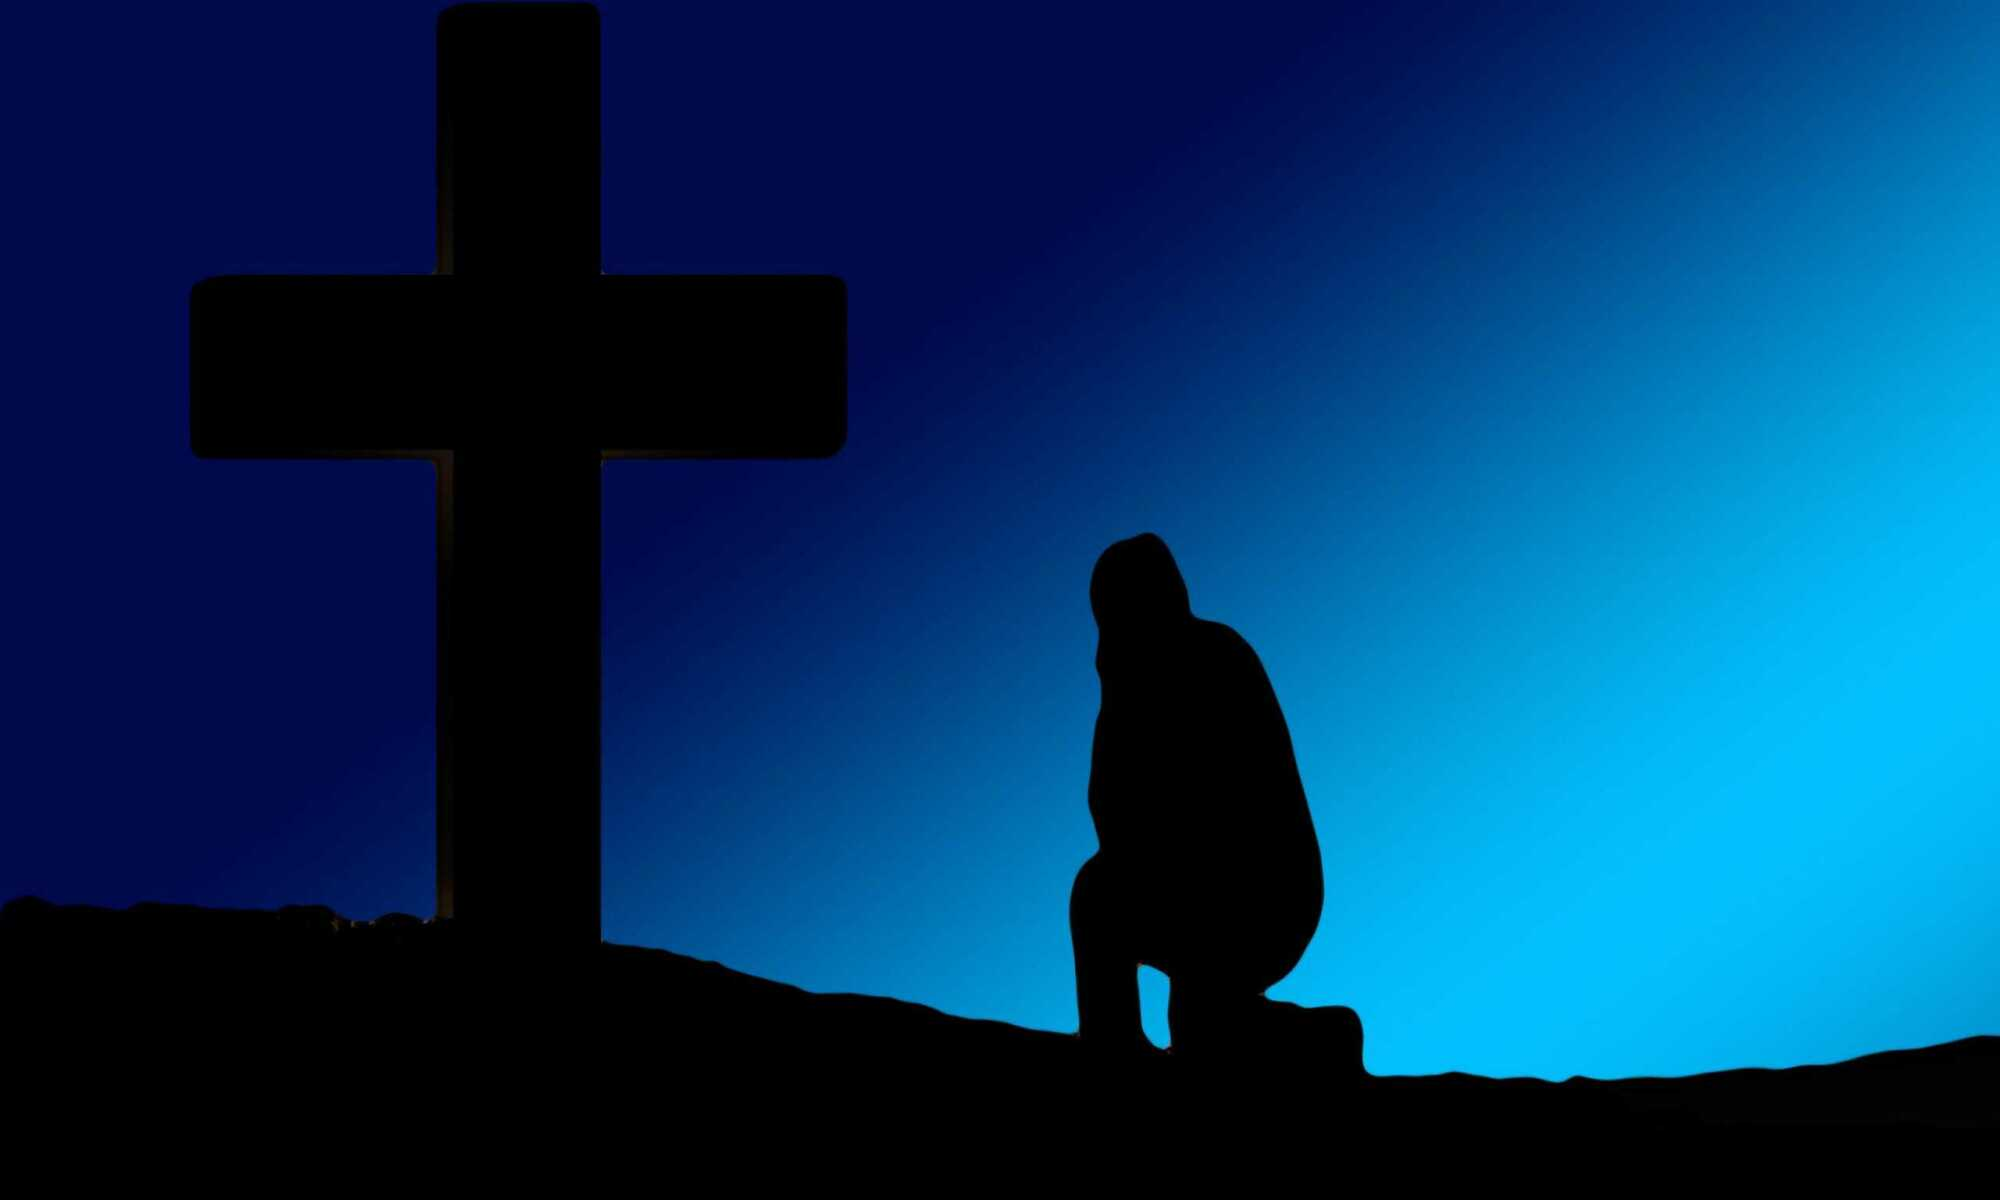 Prayer Stories (Bildquelle geralt von pixabay.com)